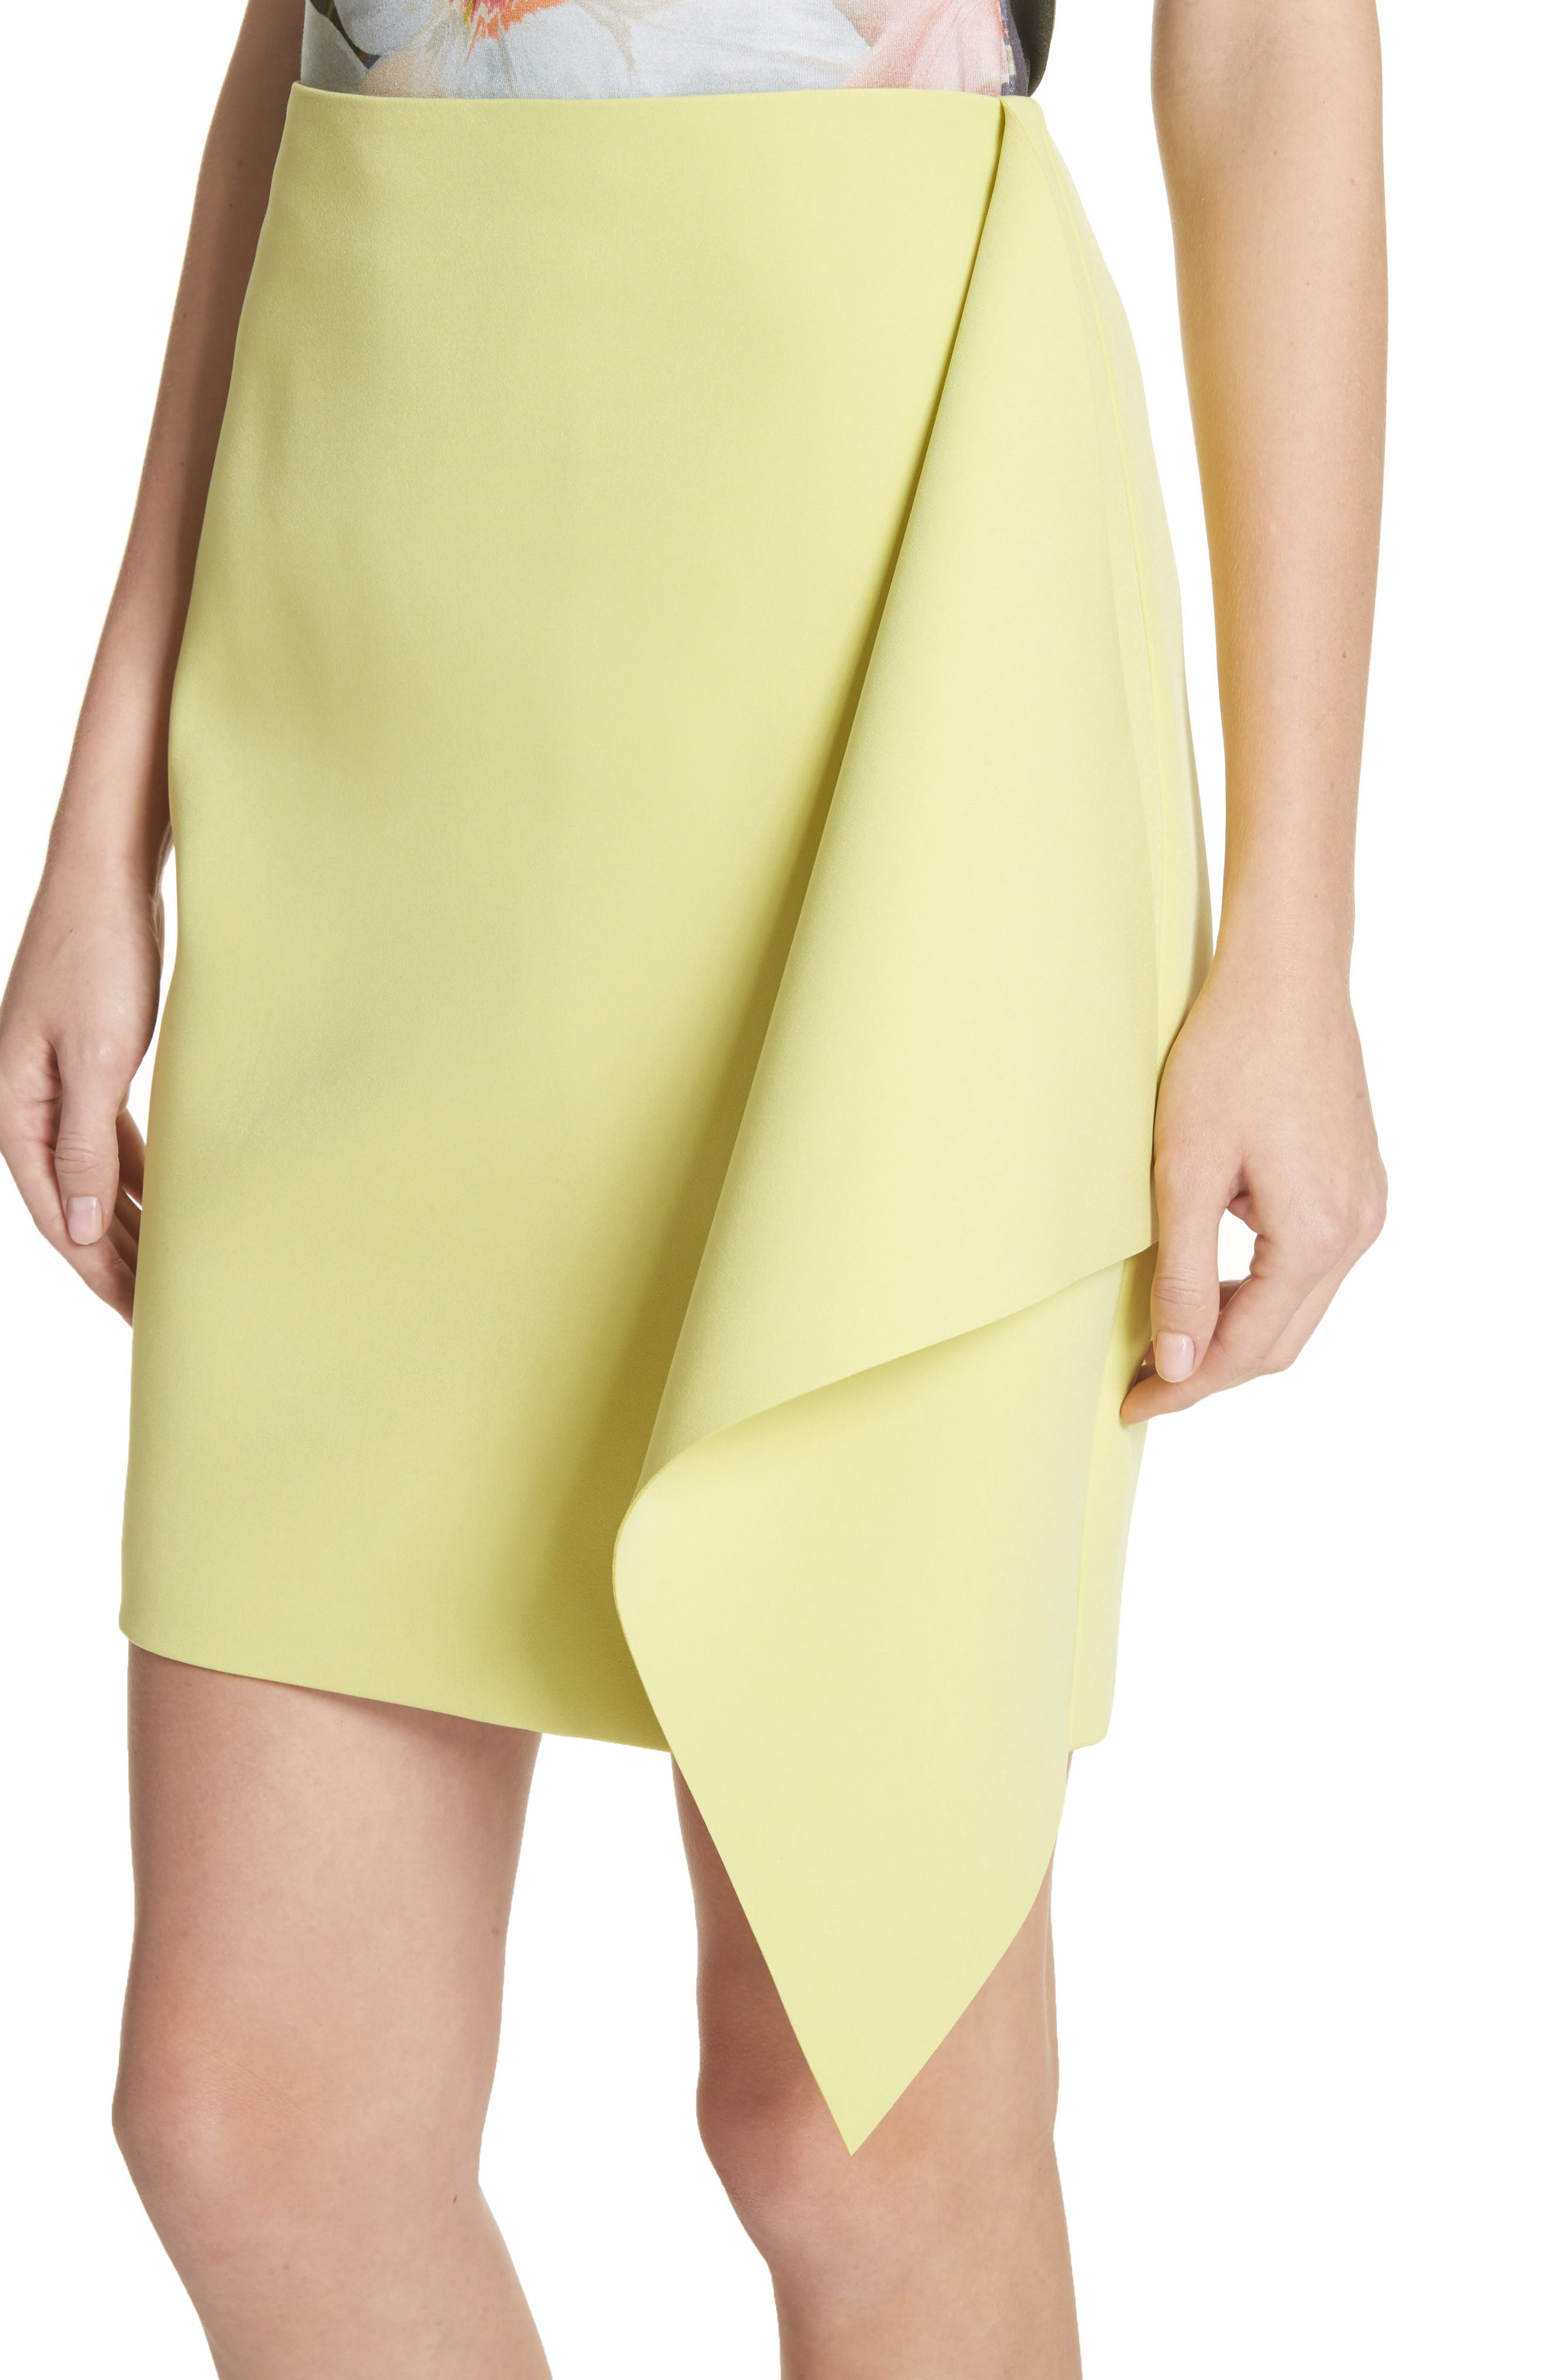 Asymmetrical Frill Pencil Skirt,                             Alternate thumbnail 4, color,                             303